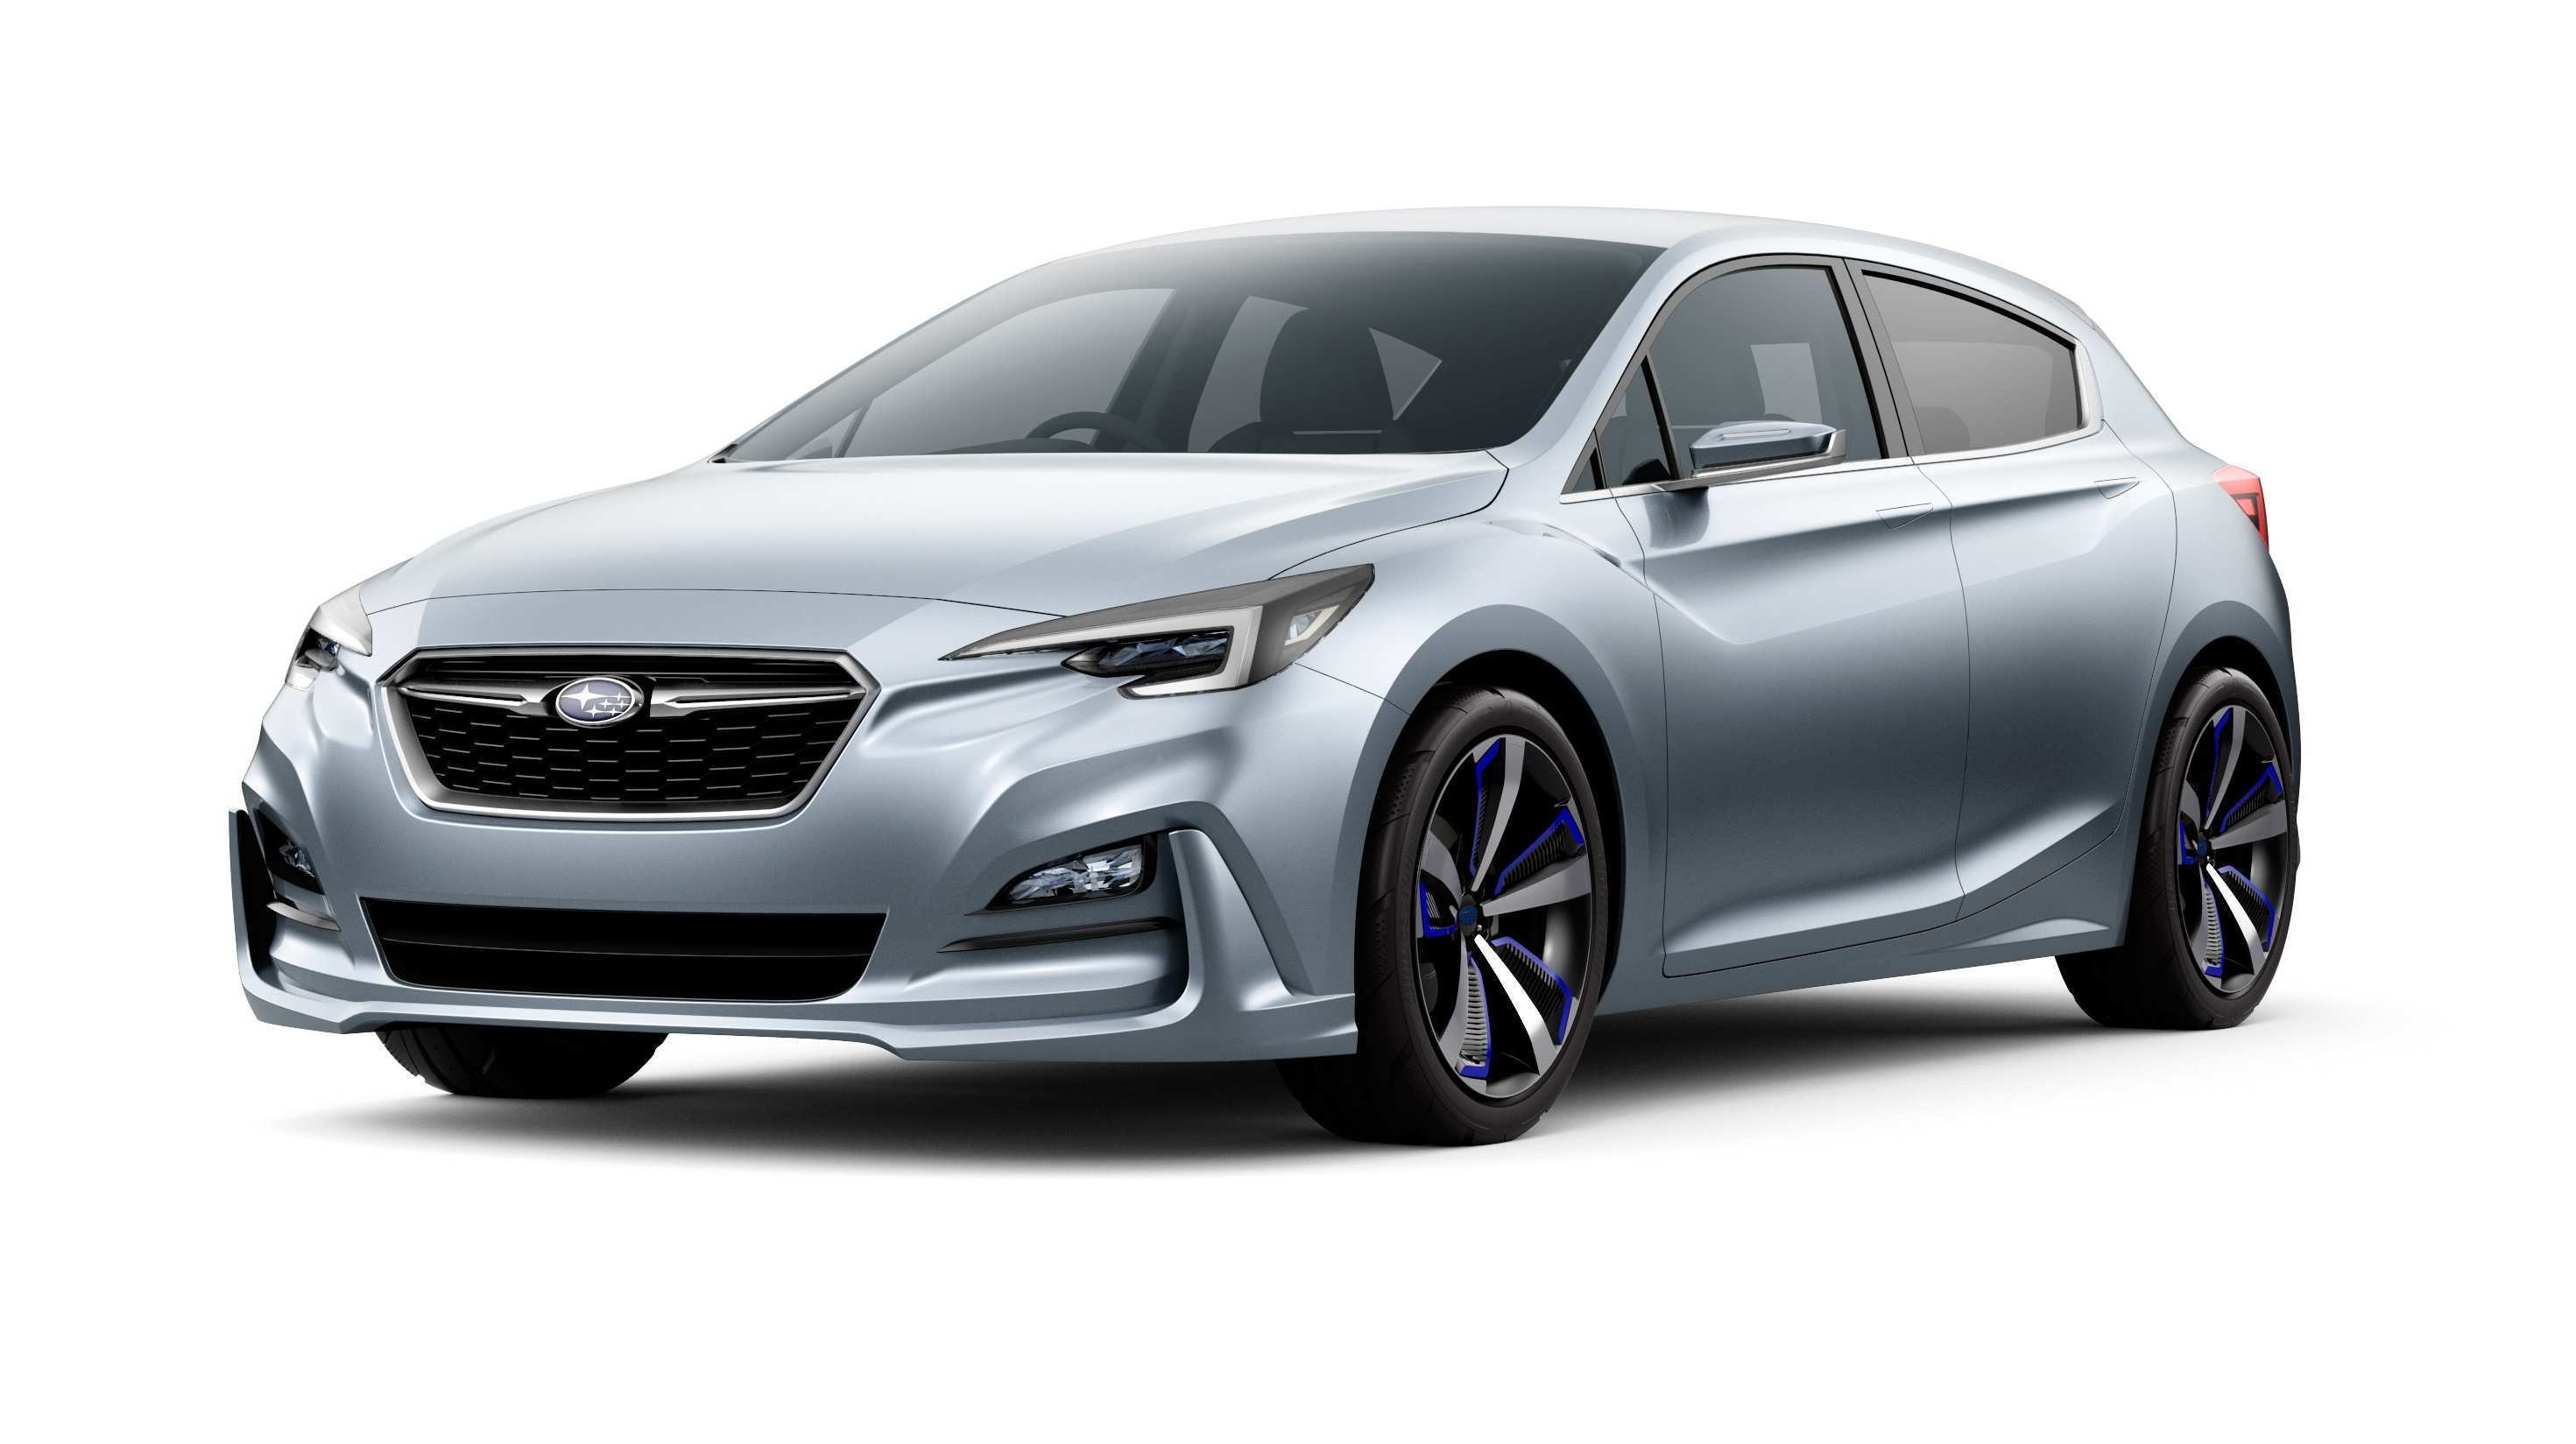 28 New 2020 Subaru Hatch Spy Shoot by 2020 Subaru Hatch